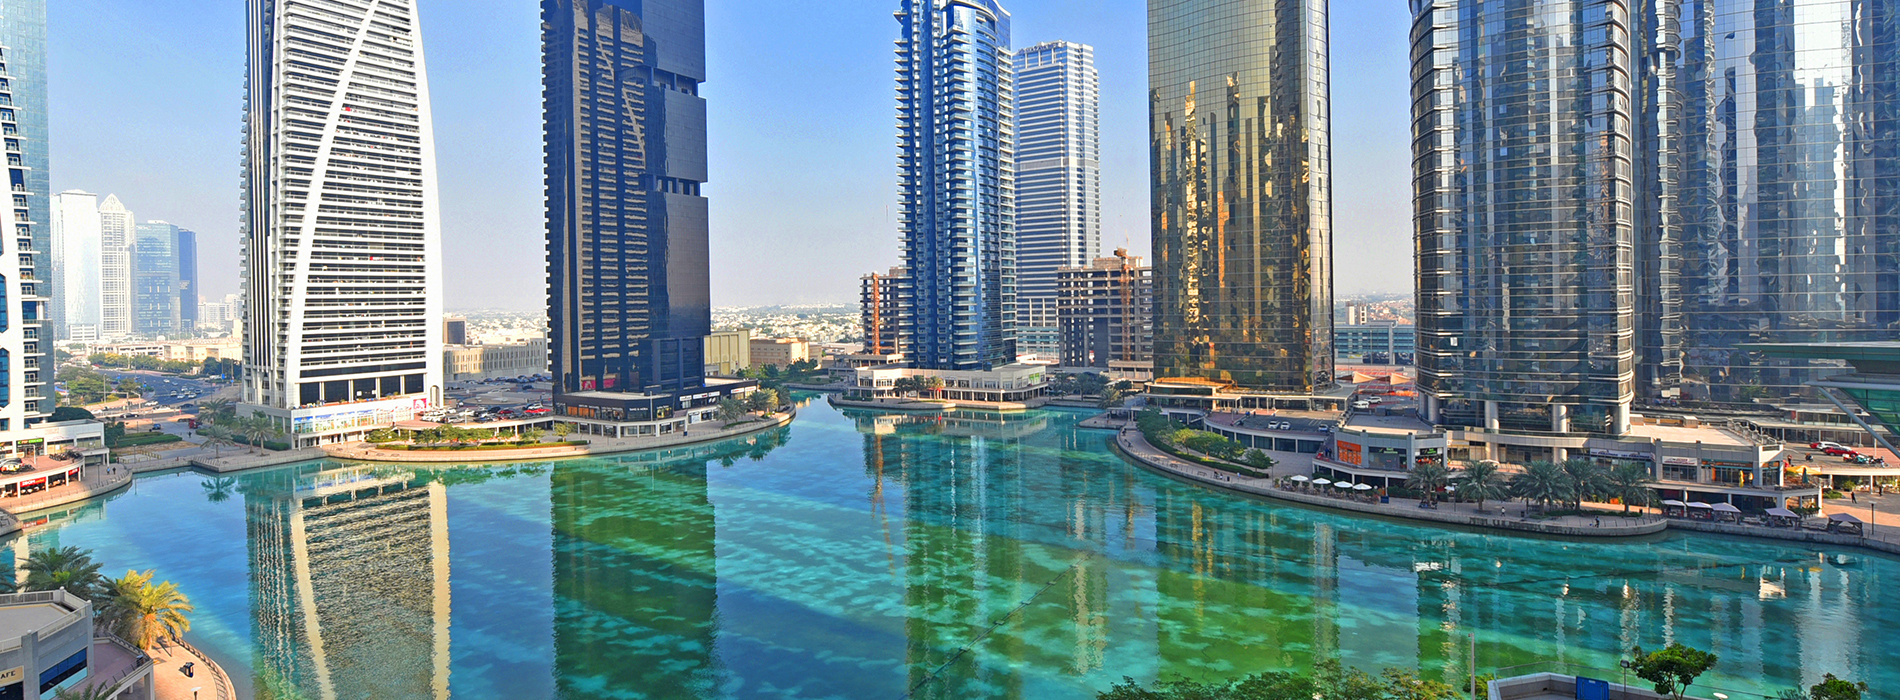 buying an off plan property in Dubai